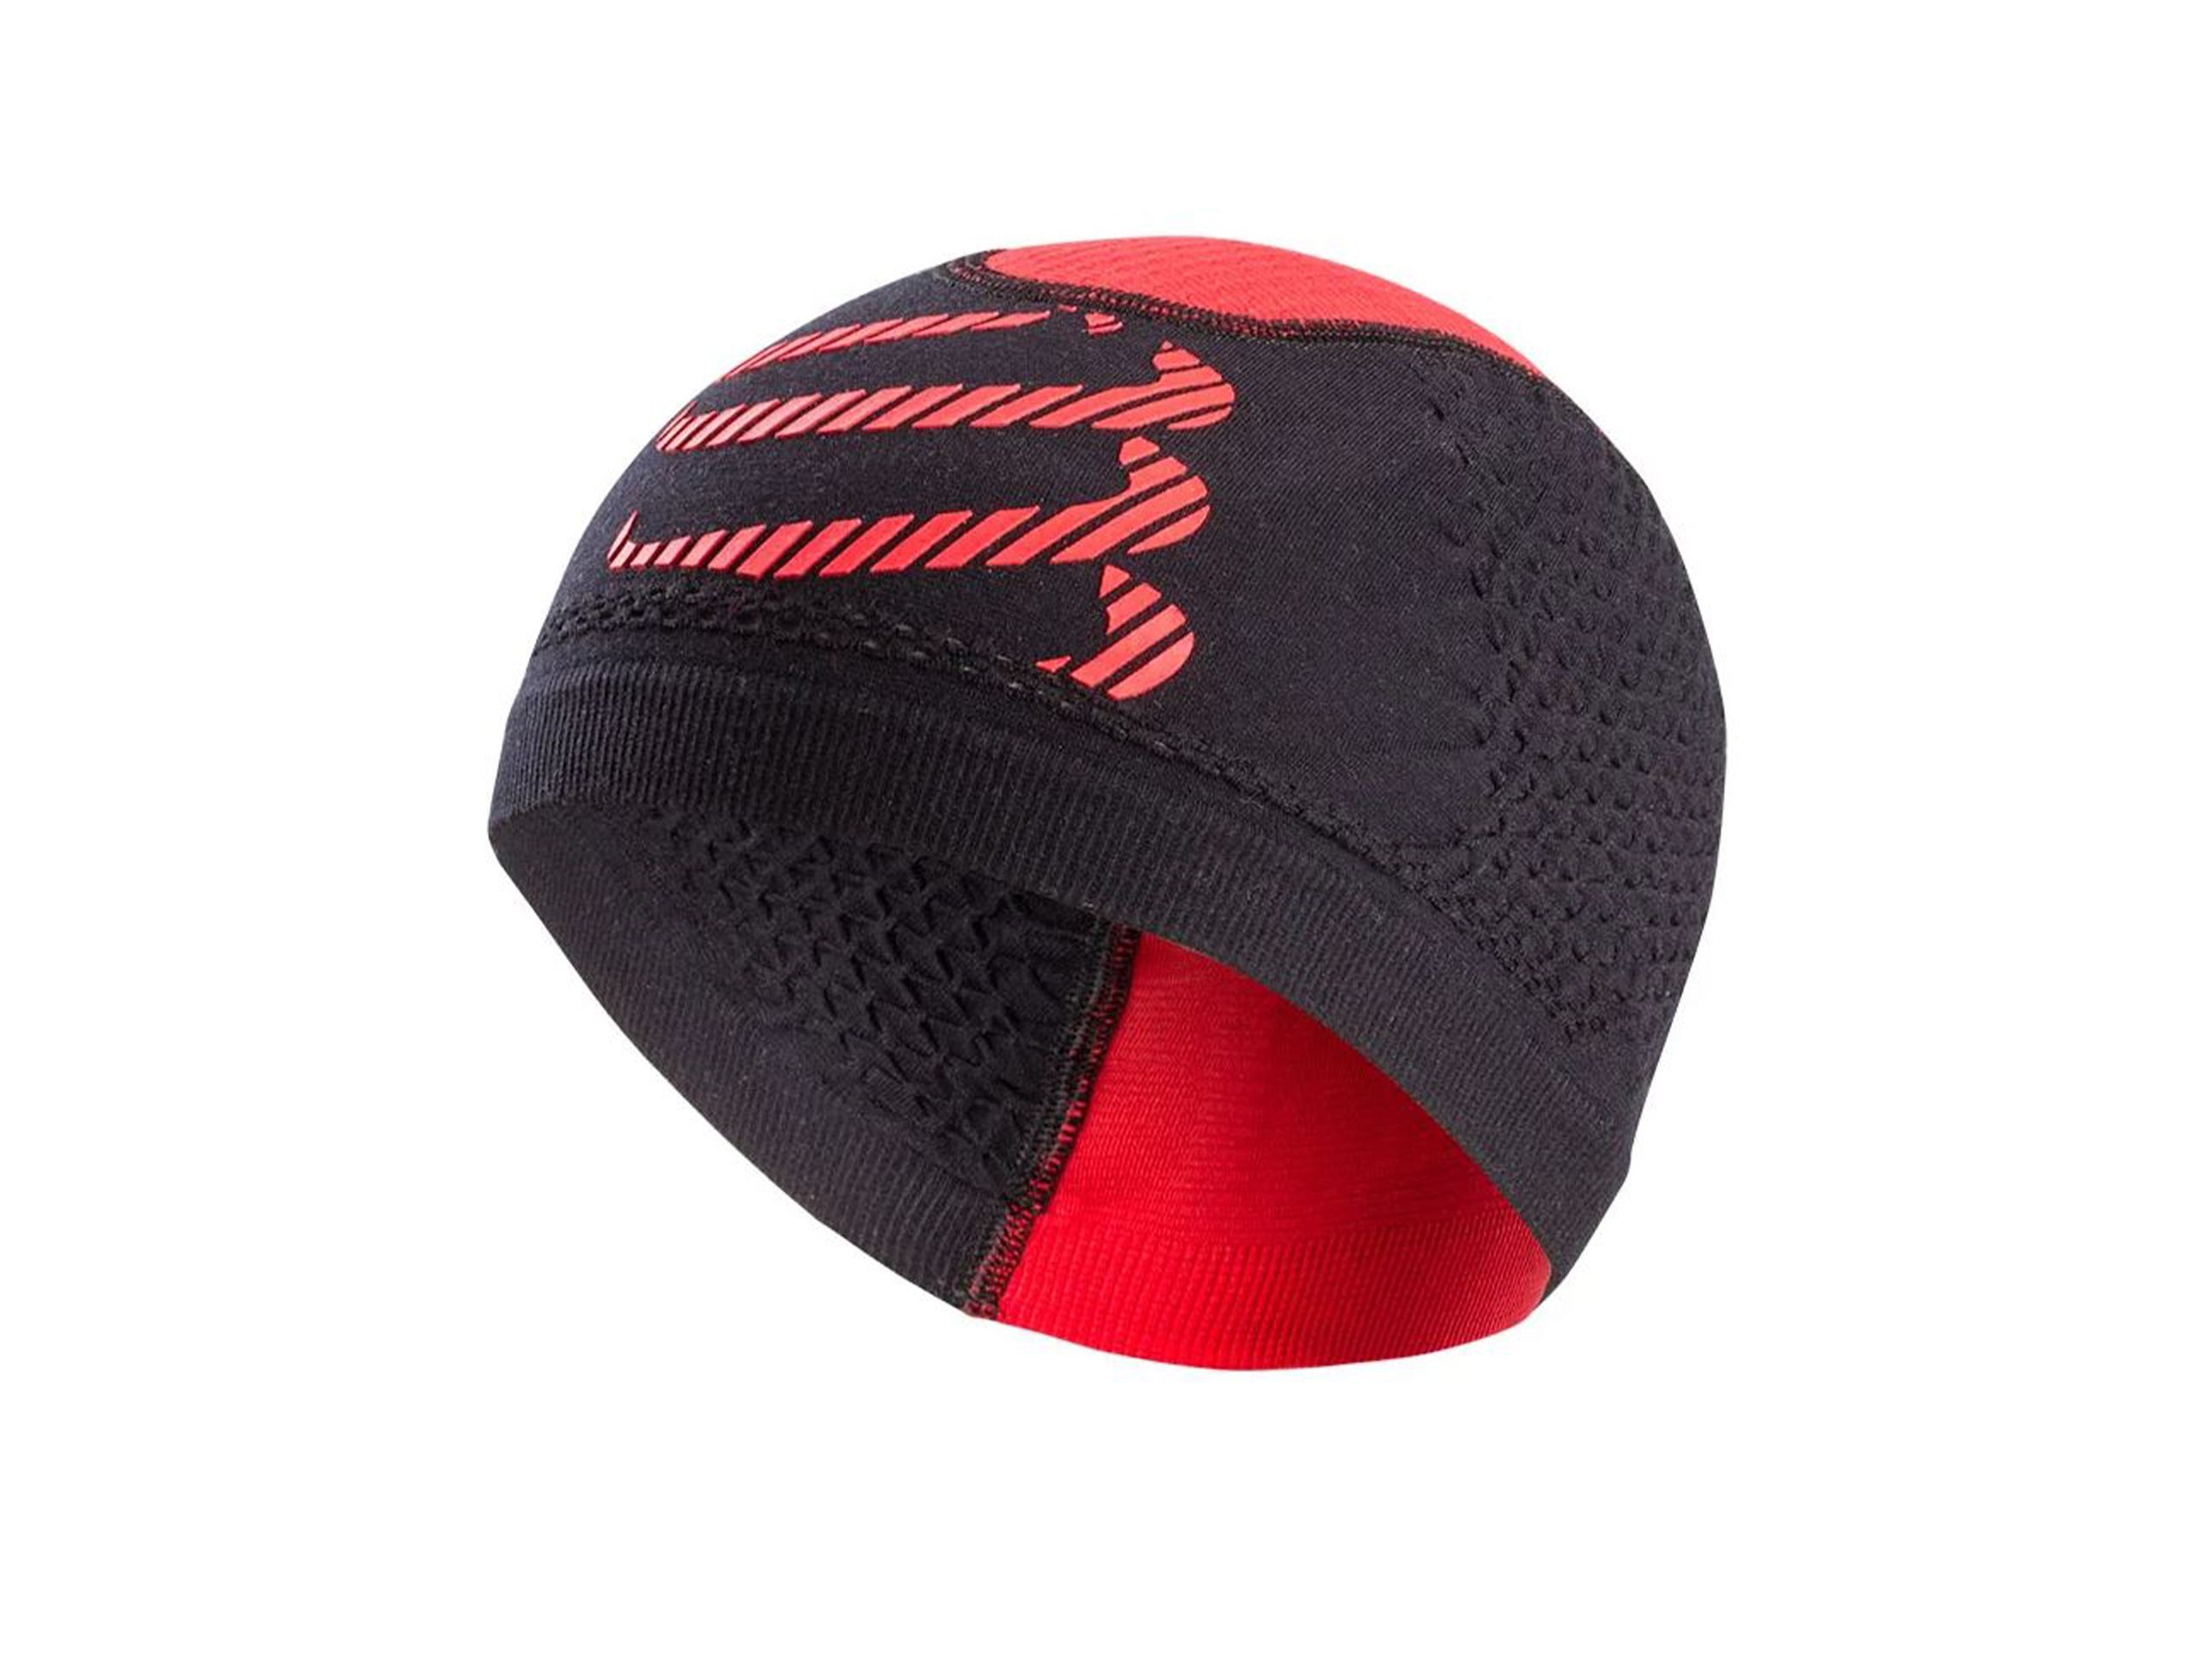 3D Thermo Seamless Beanie BLACK/RED